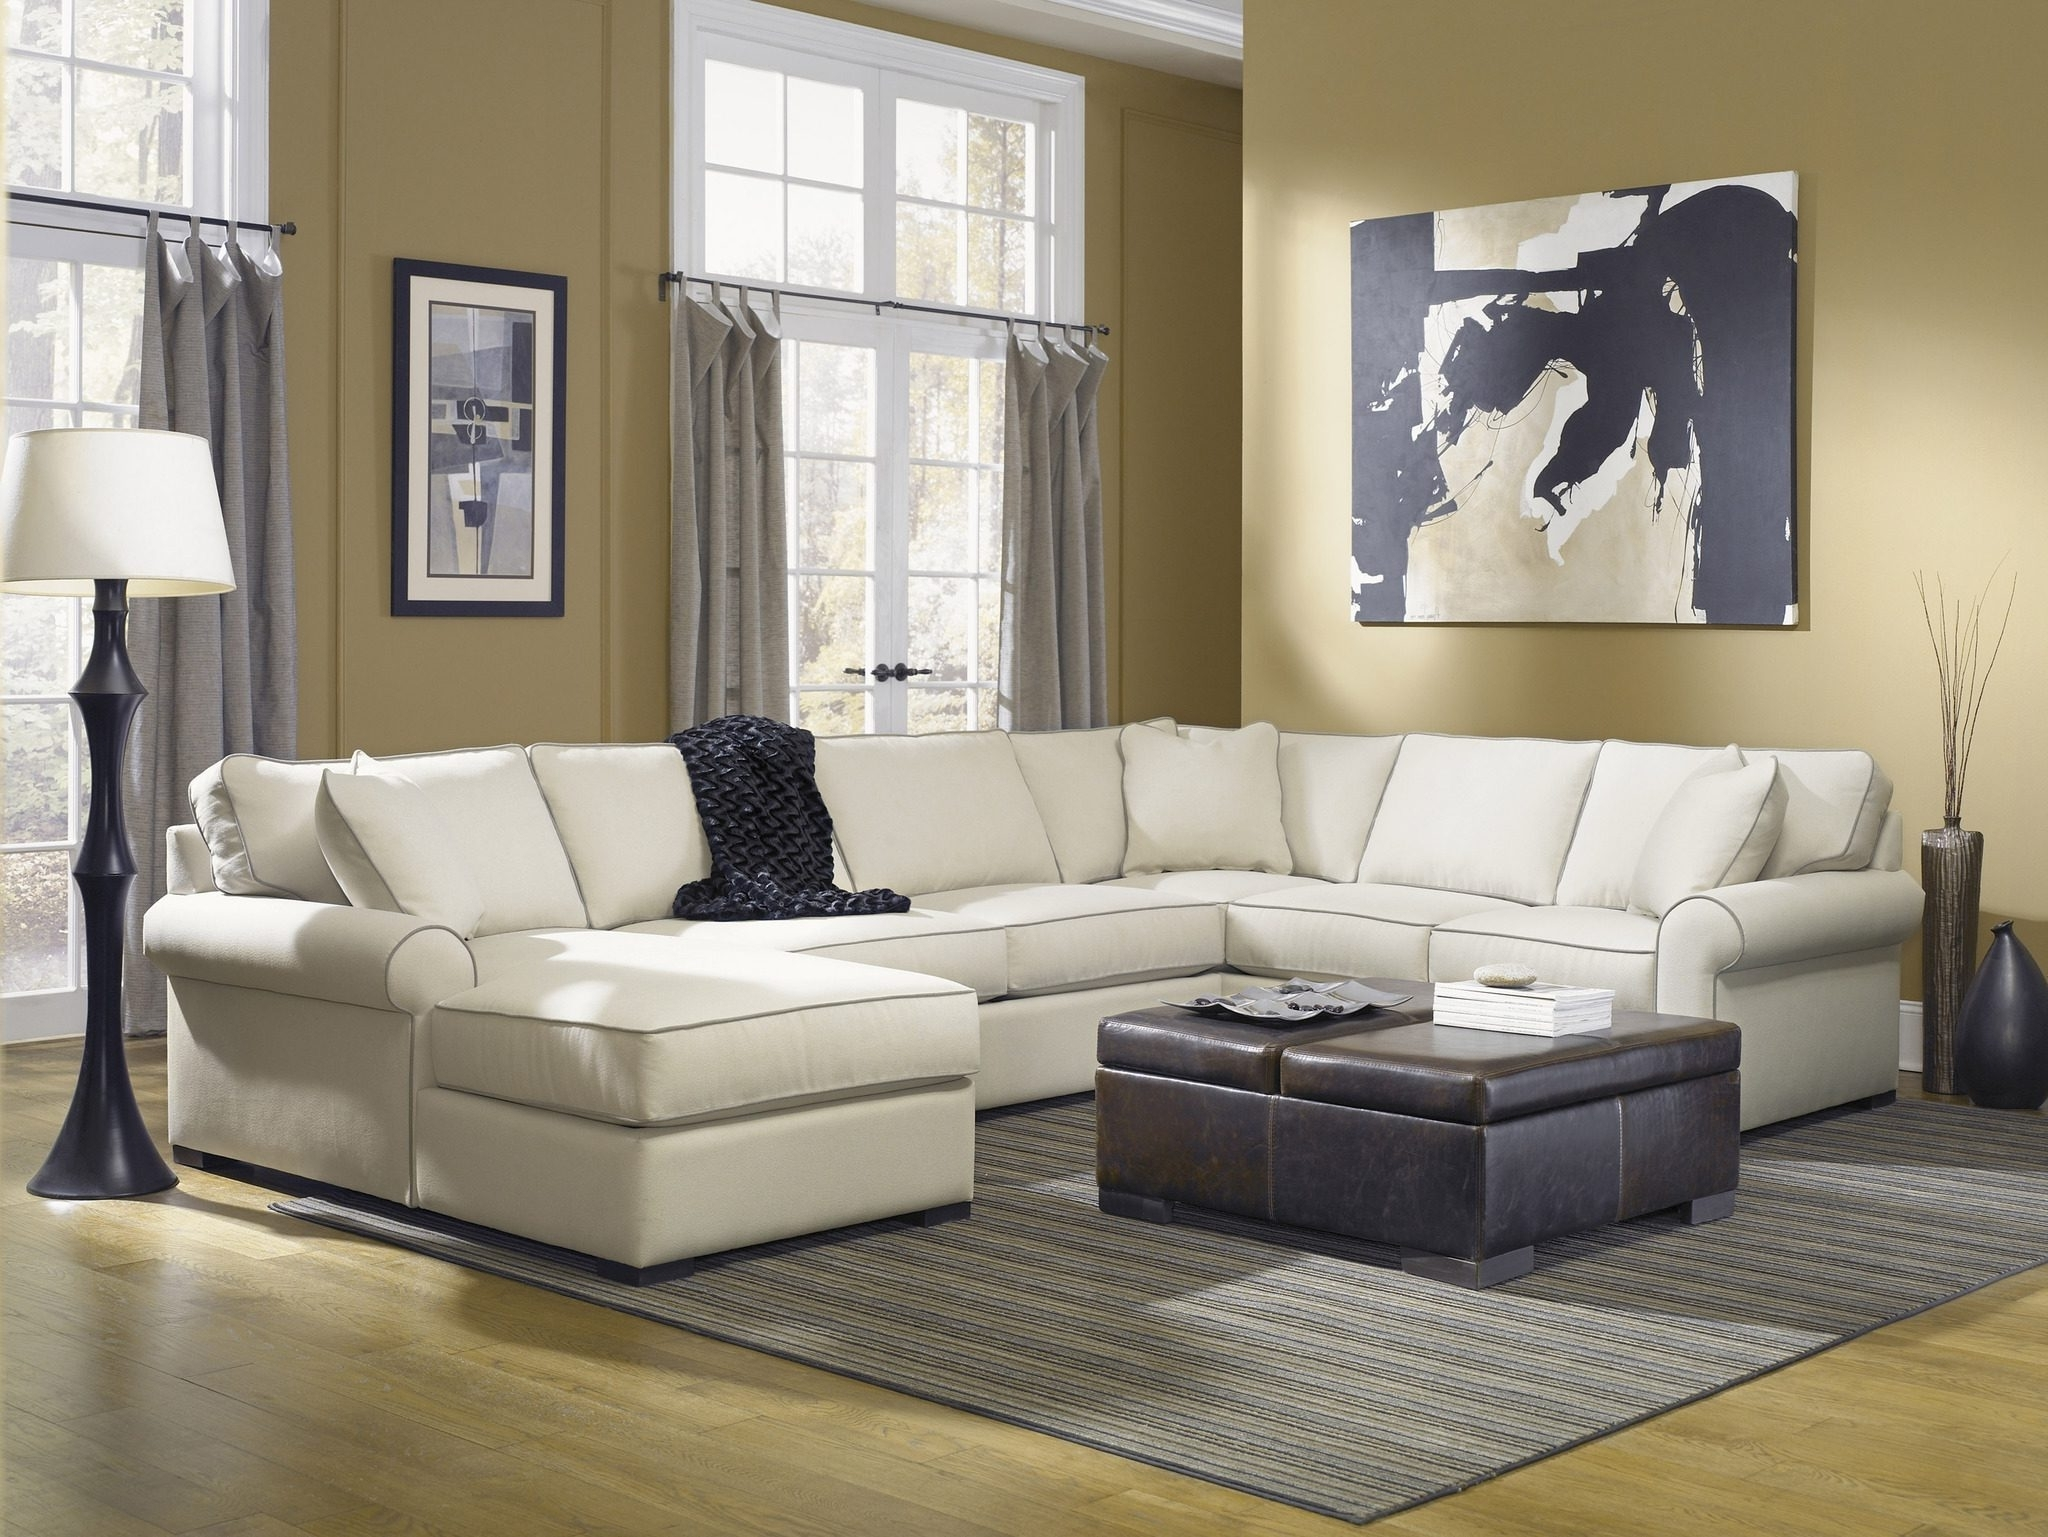 Robert Michaels Regarding Down Filled Sectional Sofas (View 18 of 20)